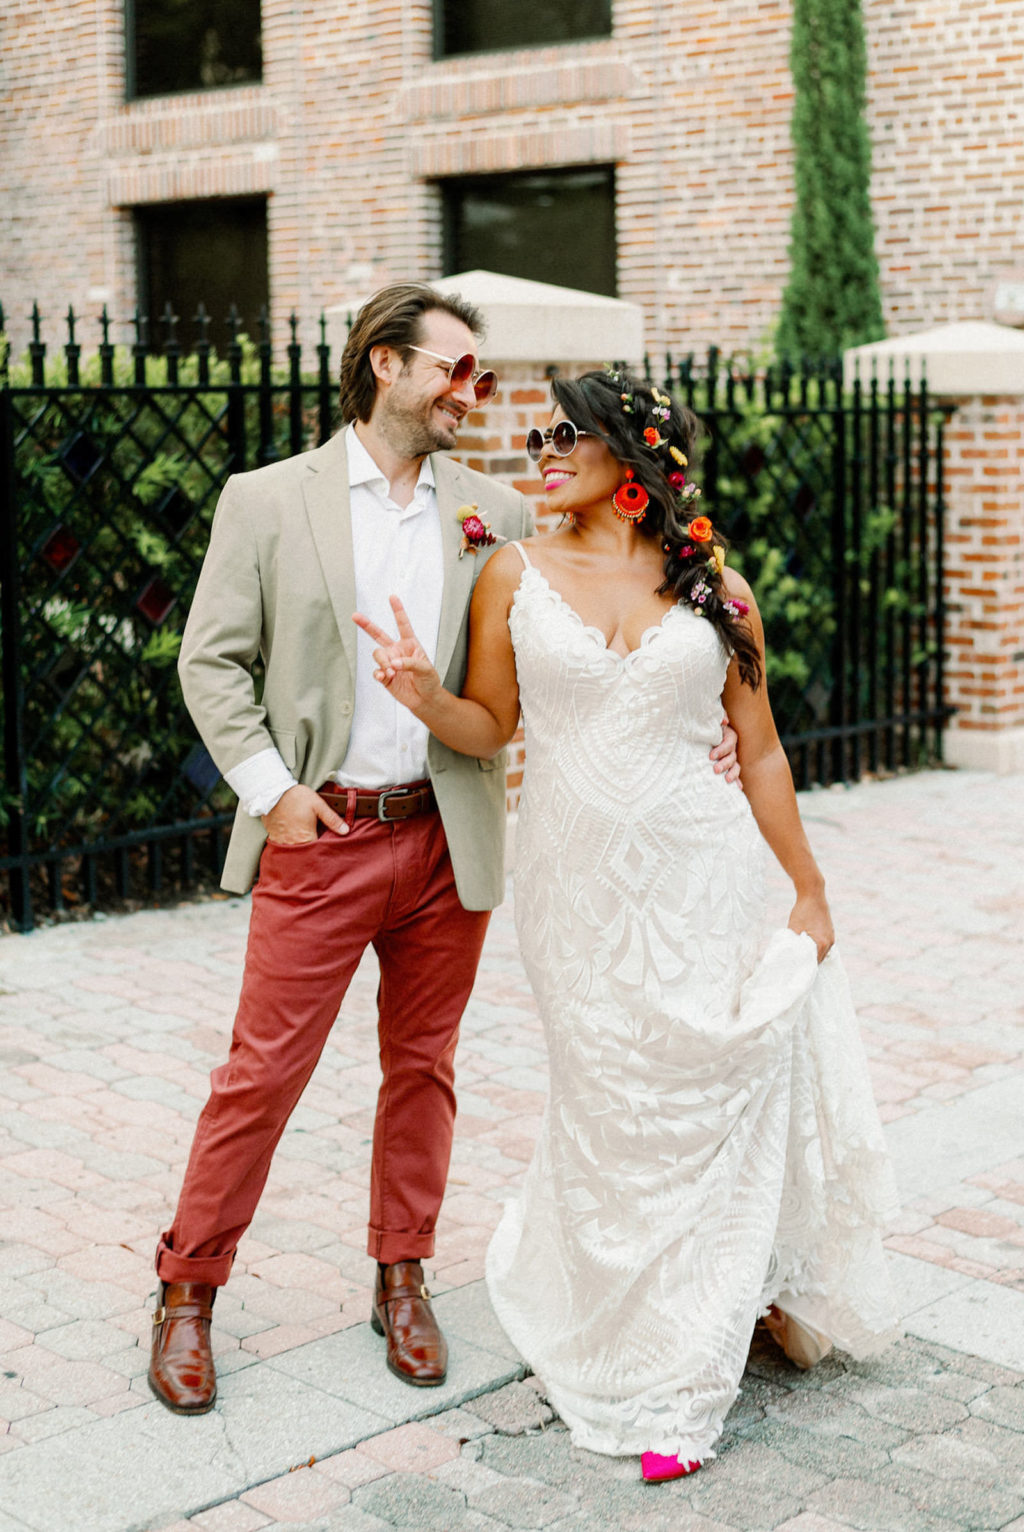 Whimsical Bride Wearing Lace Boho Spaghetti Strap and V Neckline Wedding Dress, Hair in Braid with Colorful Flowers and Sunglasses, Groom in Dusty Red Pants, Gray Suit Jacket and Red Retro Sunglasses   Tampa Bay Wedding Photographer Dewitt for Love